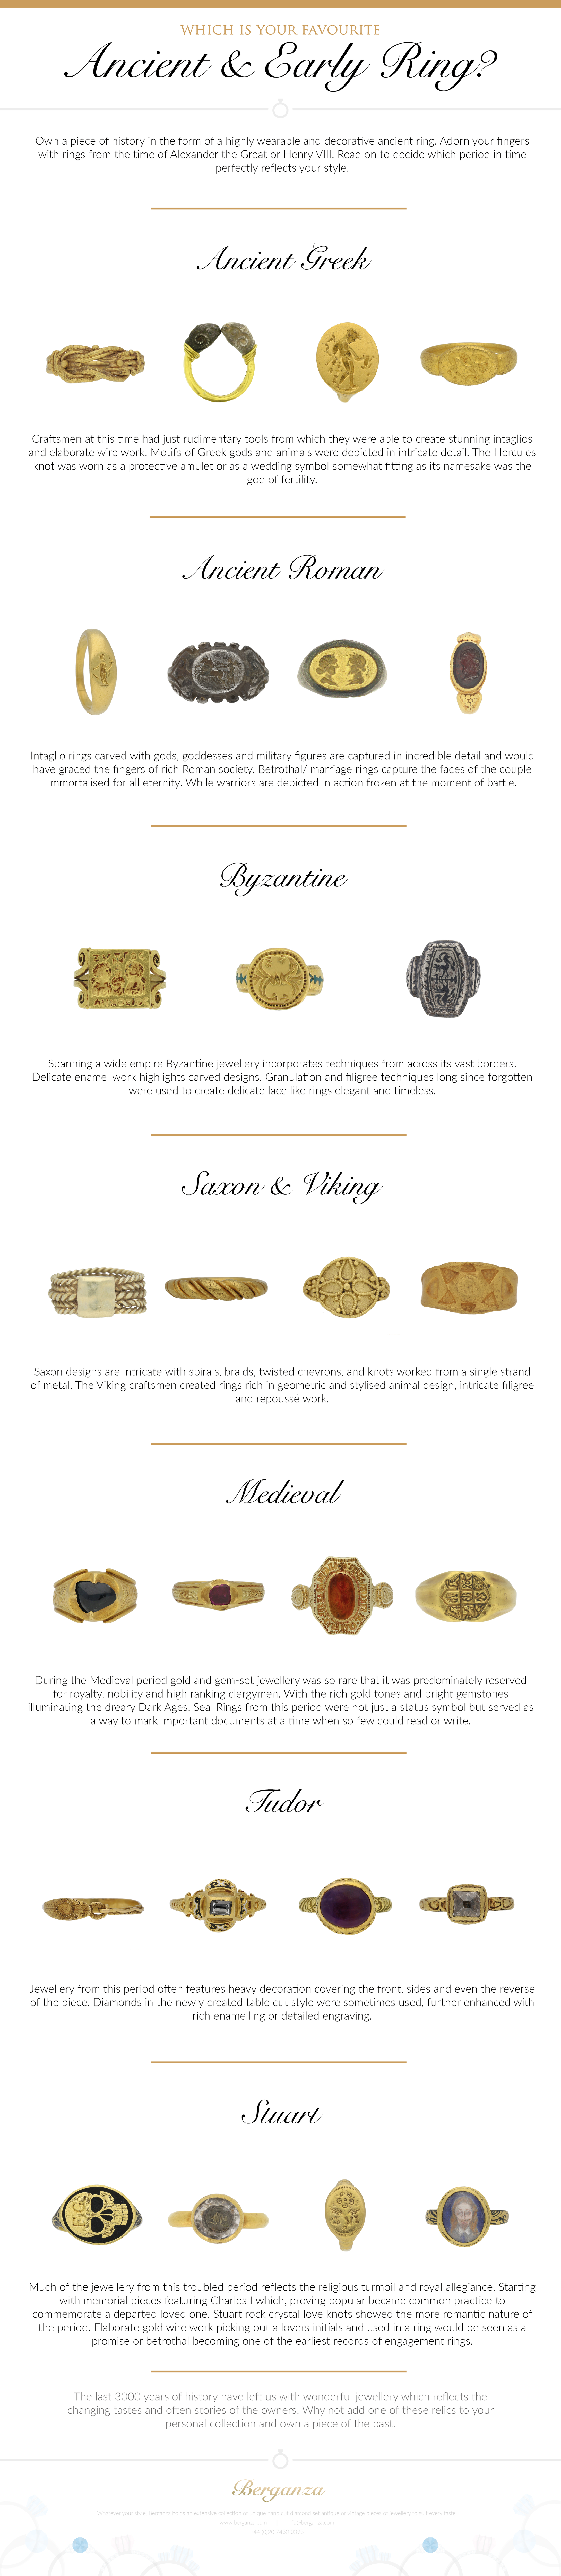 Types of Ancient Rings, Victoria's Jewelry Box